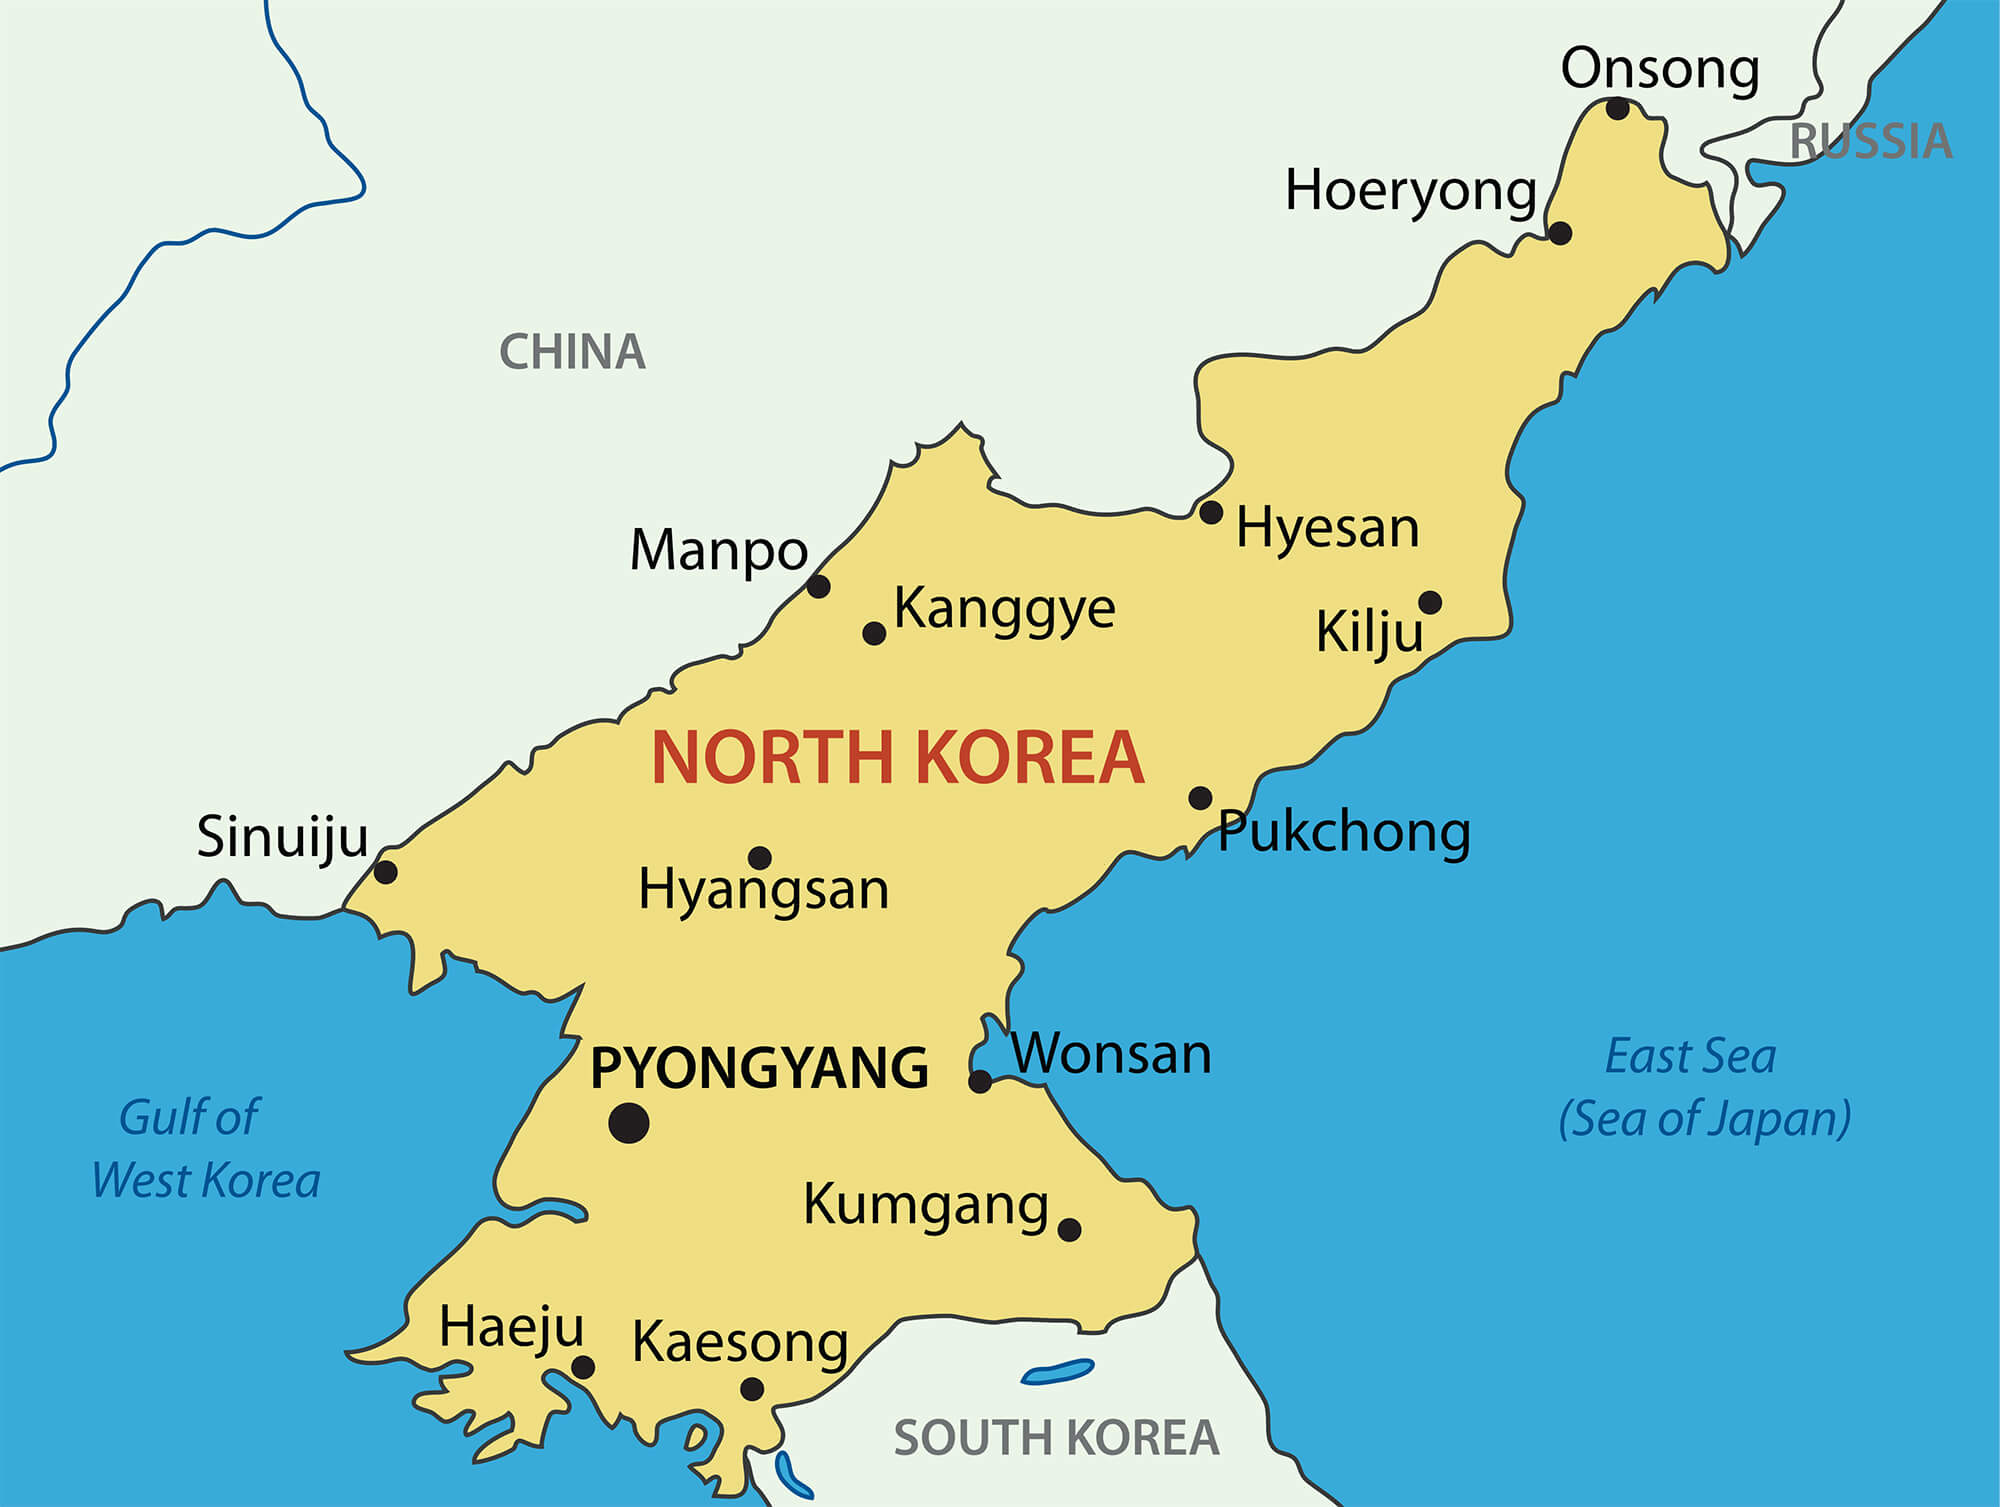 North Korea: American Professor Detained While Trying To ... on map of aruba airports, map of france airports, map of haiti airports, map of israel airports, map of taiwan airports, map of lithuania airports, map of south africa airports, map of iran airports, map of swaziland airports, map of bolivia airports, map of indonesia airports, map of myanmar airports, map of kazakhstan airports, map of the united states airports, map of japan airports, map of united kingdom airports, map of thailand airports, map of zimbabwe airports, map of colombia airports, map of ireland airports,